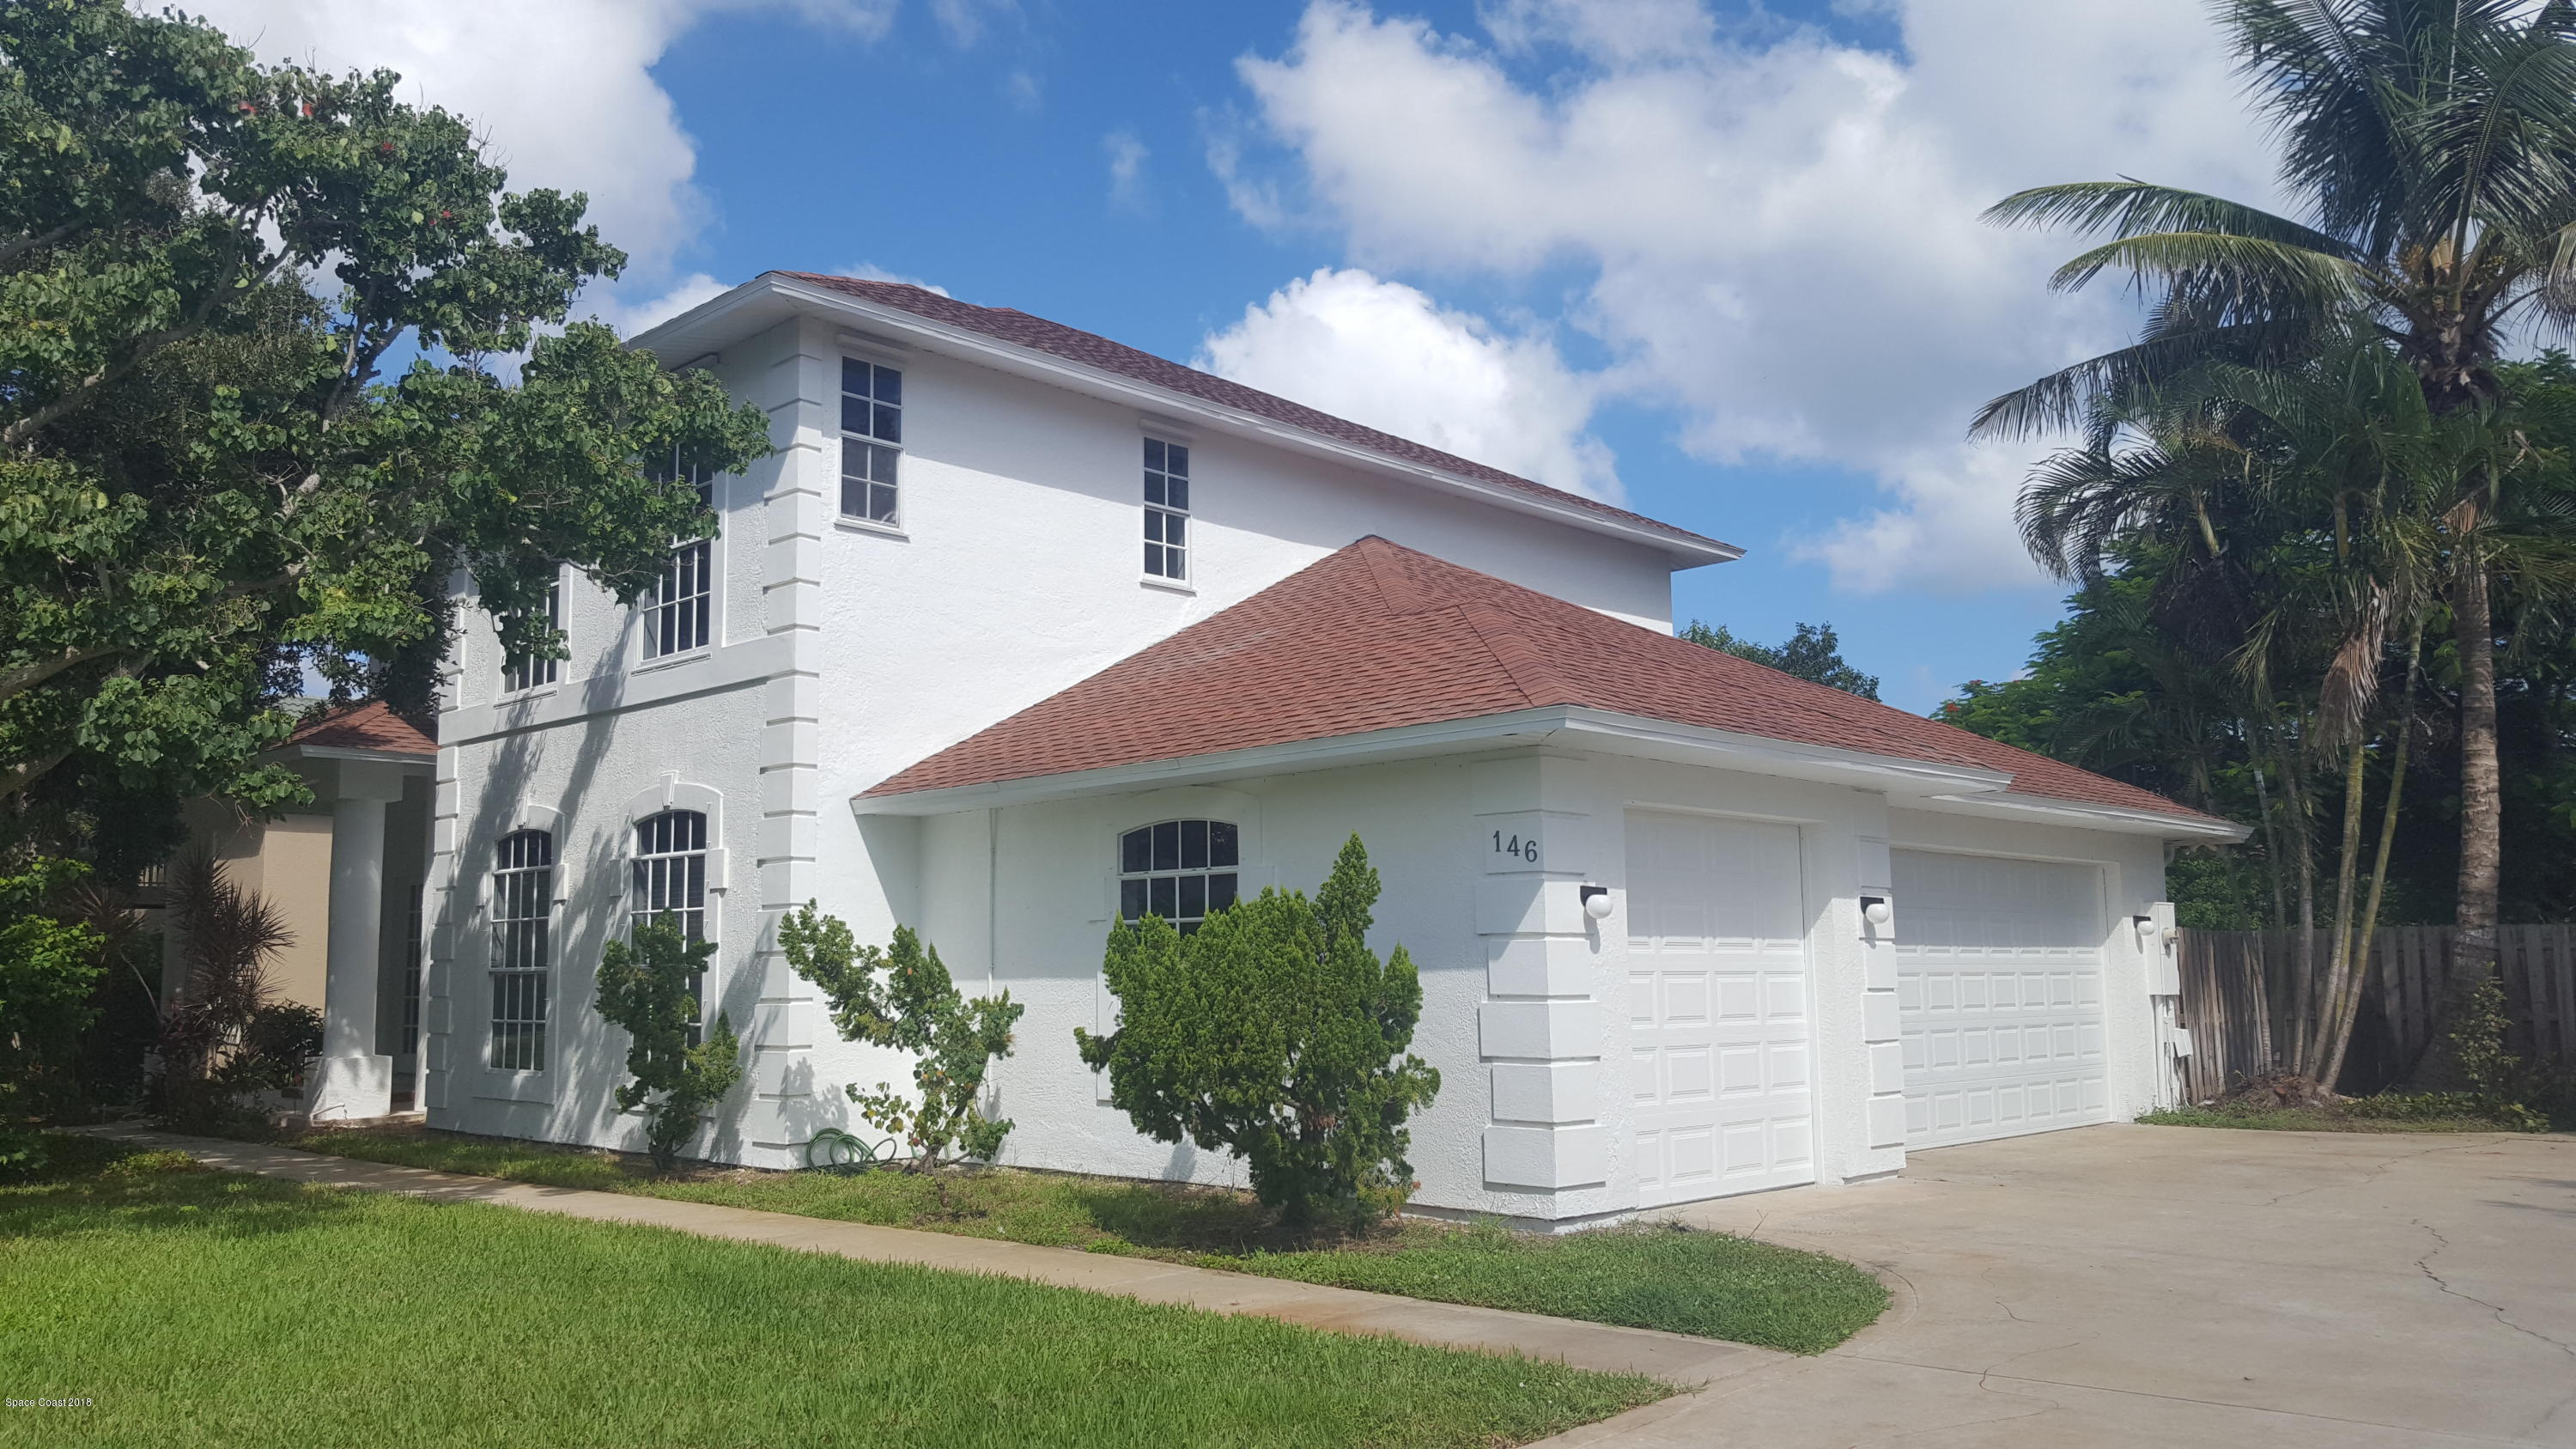 Single Family Homes for Sale at 146 Hidden Cove Melbourne Beach, Florida 32951 United States